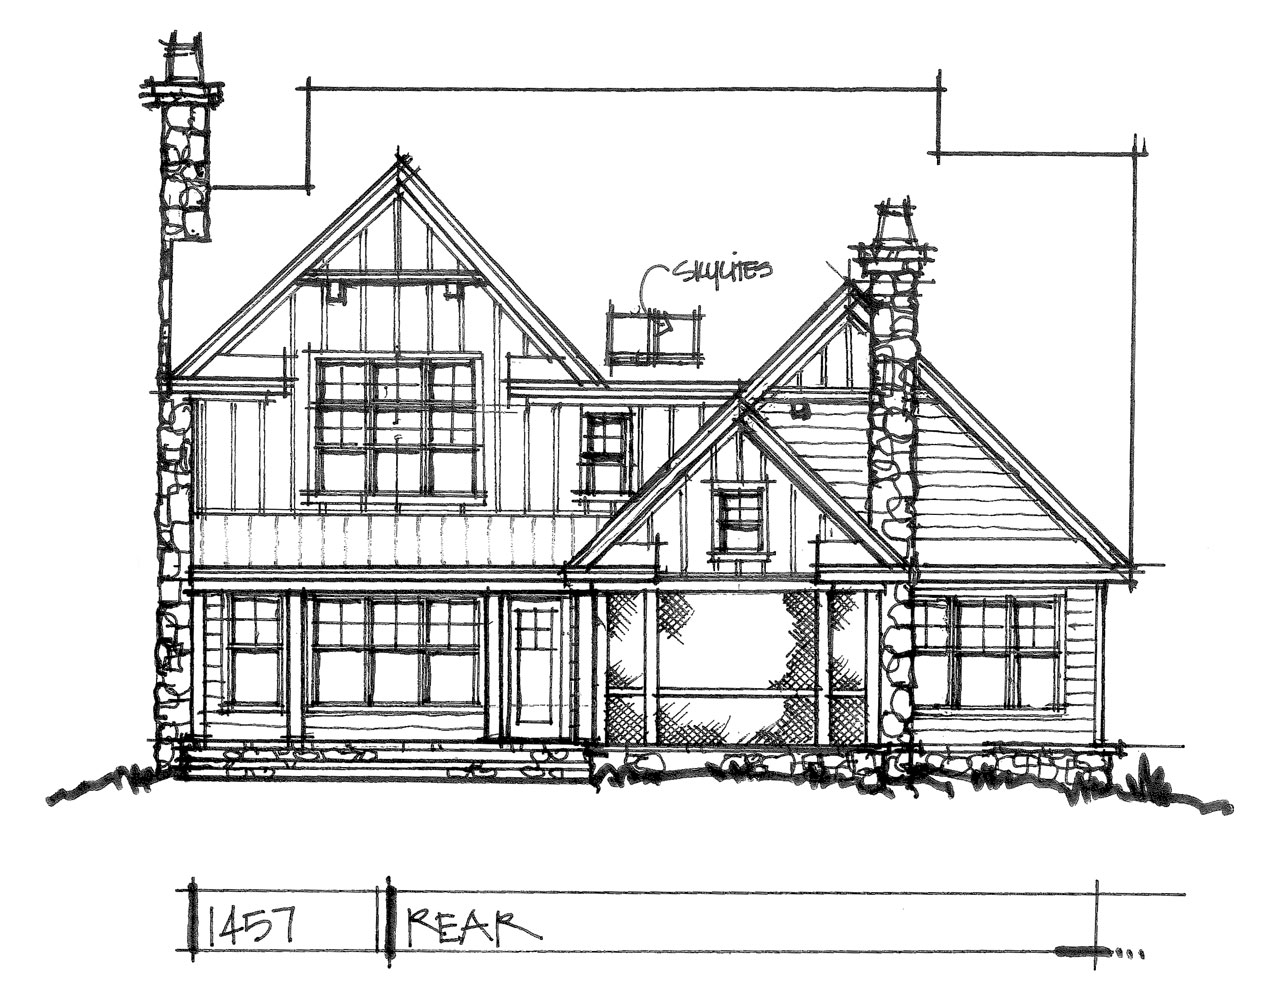 Check out the rear rendering of conceptual house plan 1457.